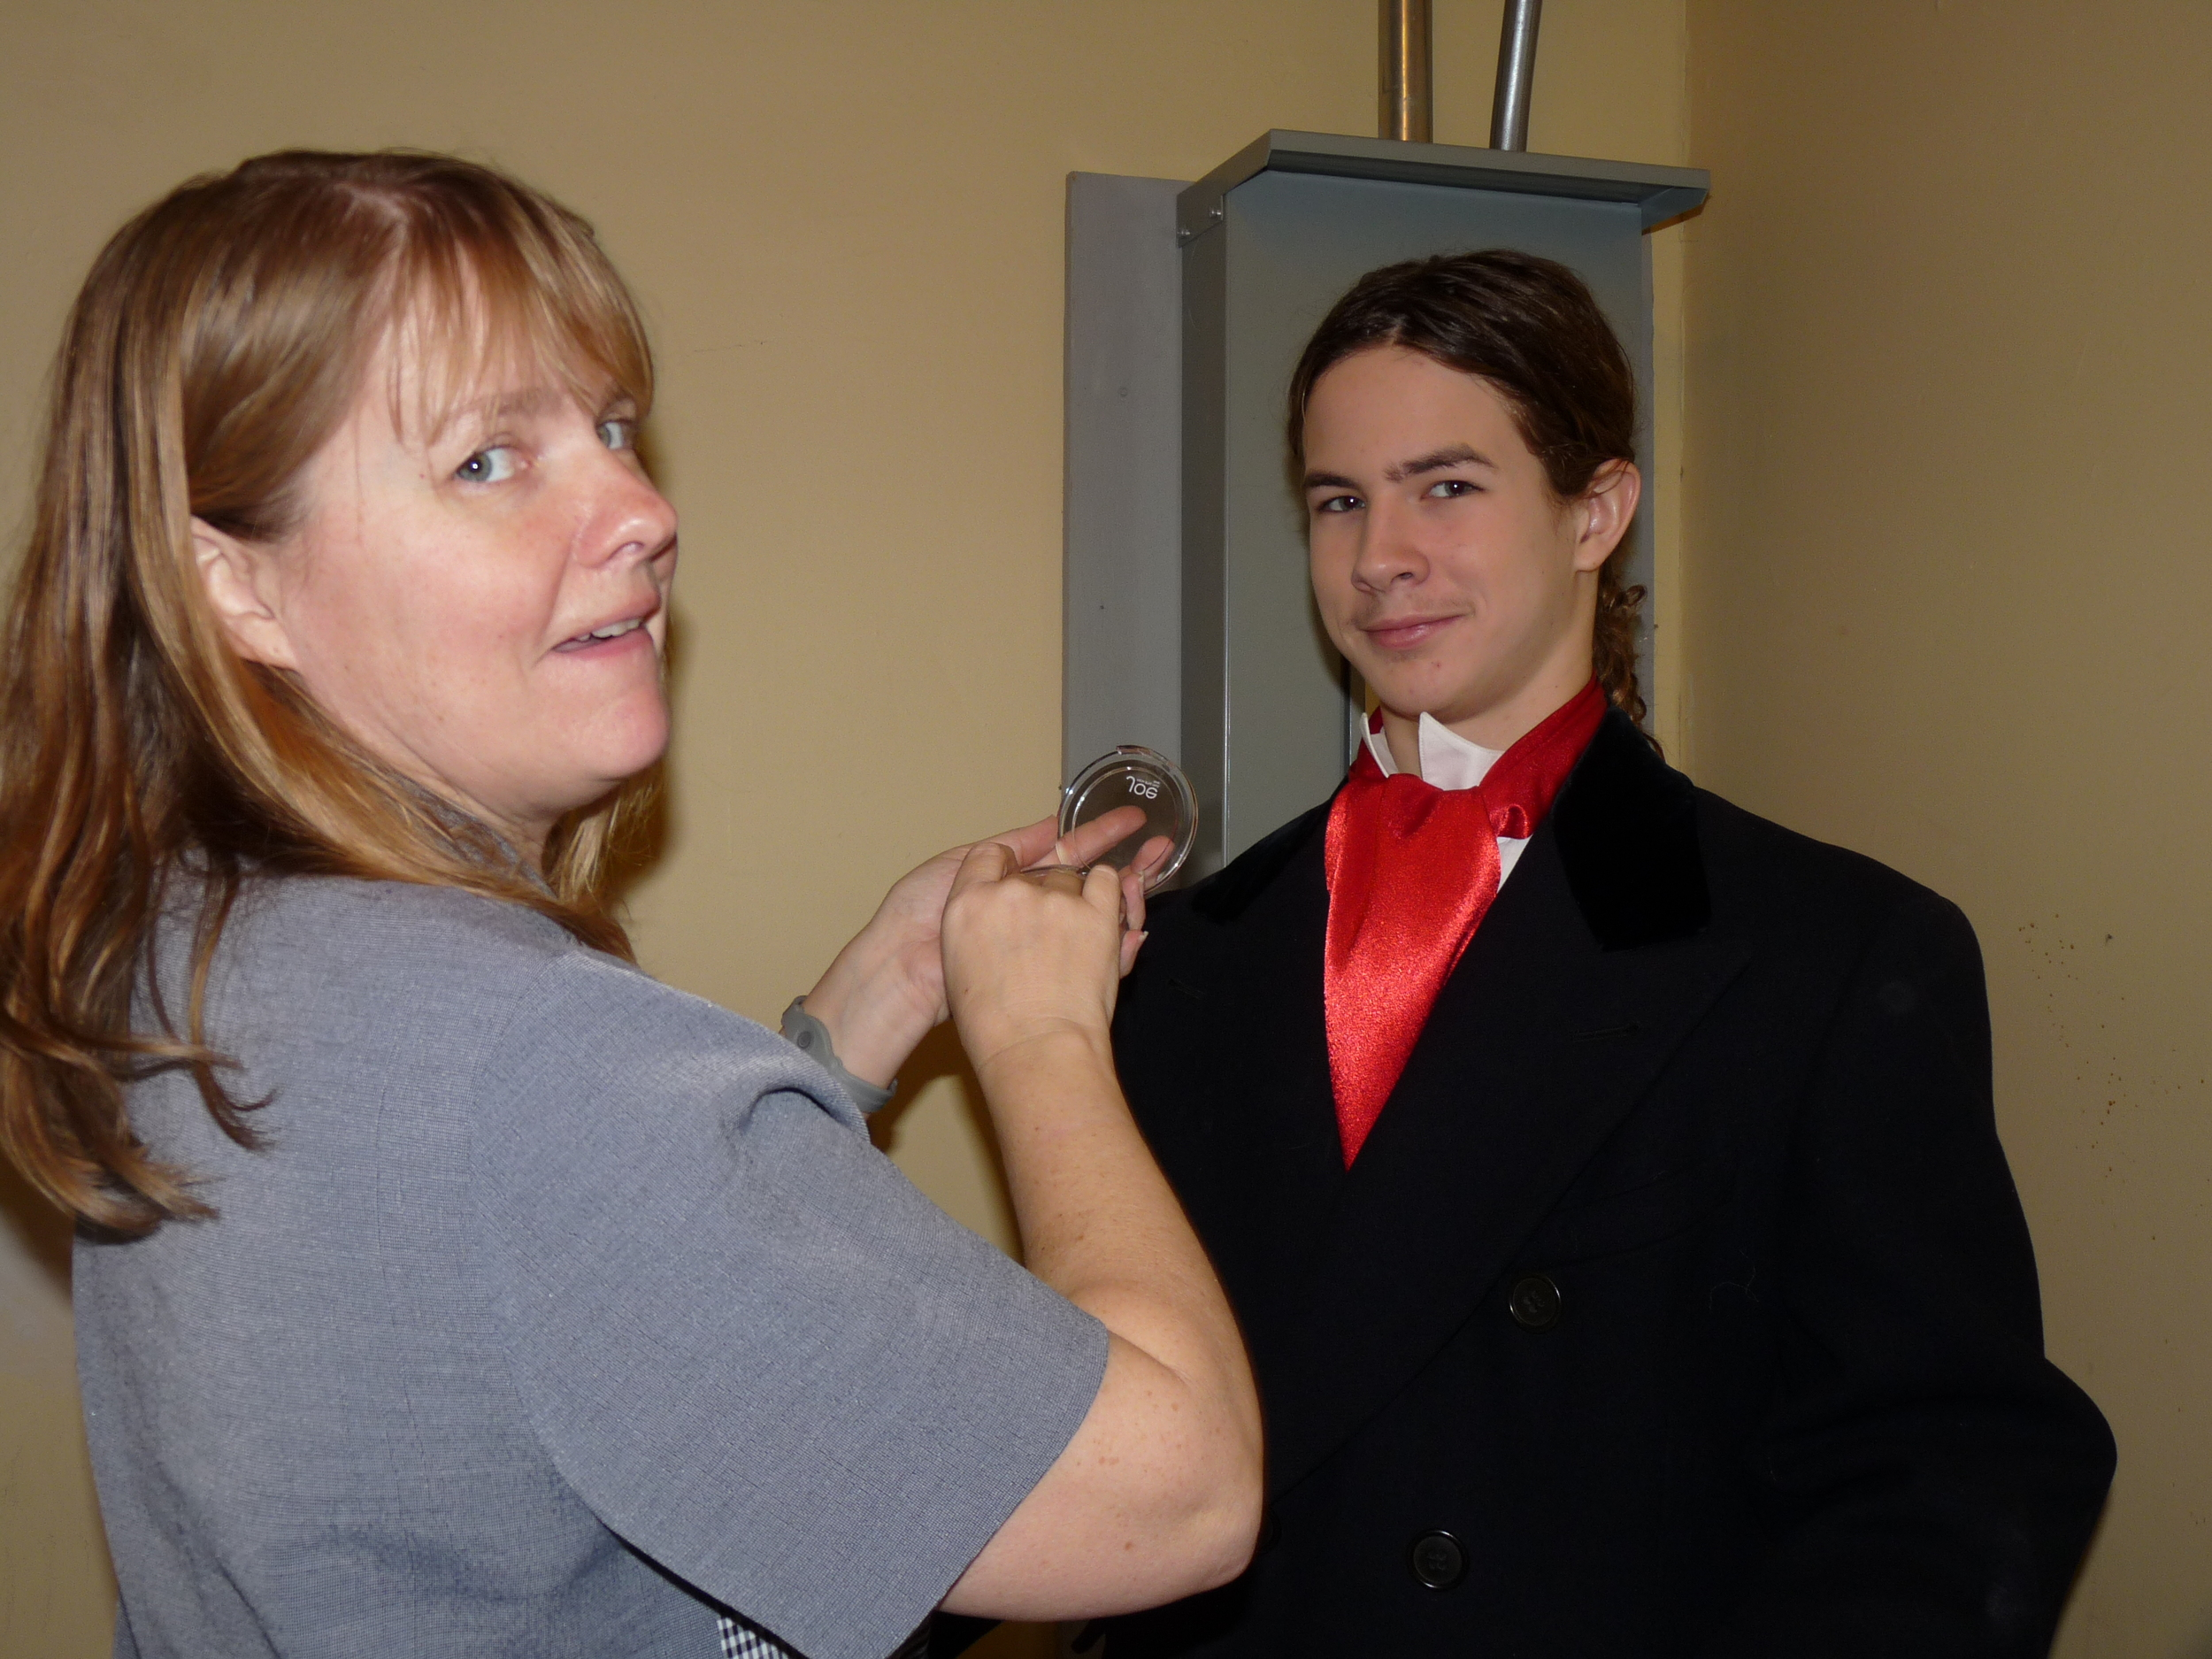 Volunteers makeupour actors for the stage - So performers stand out for the audience!